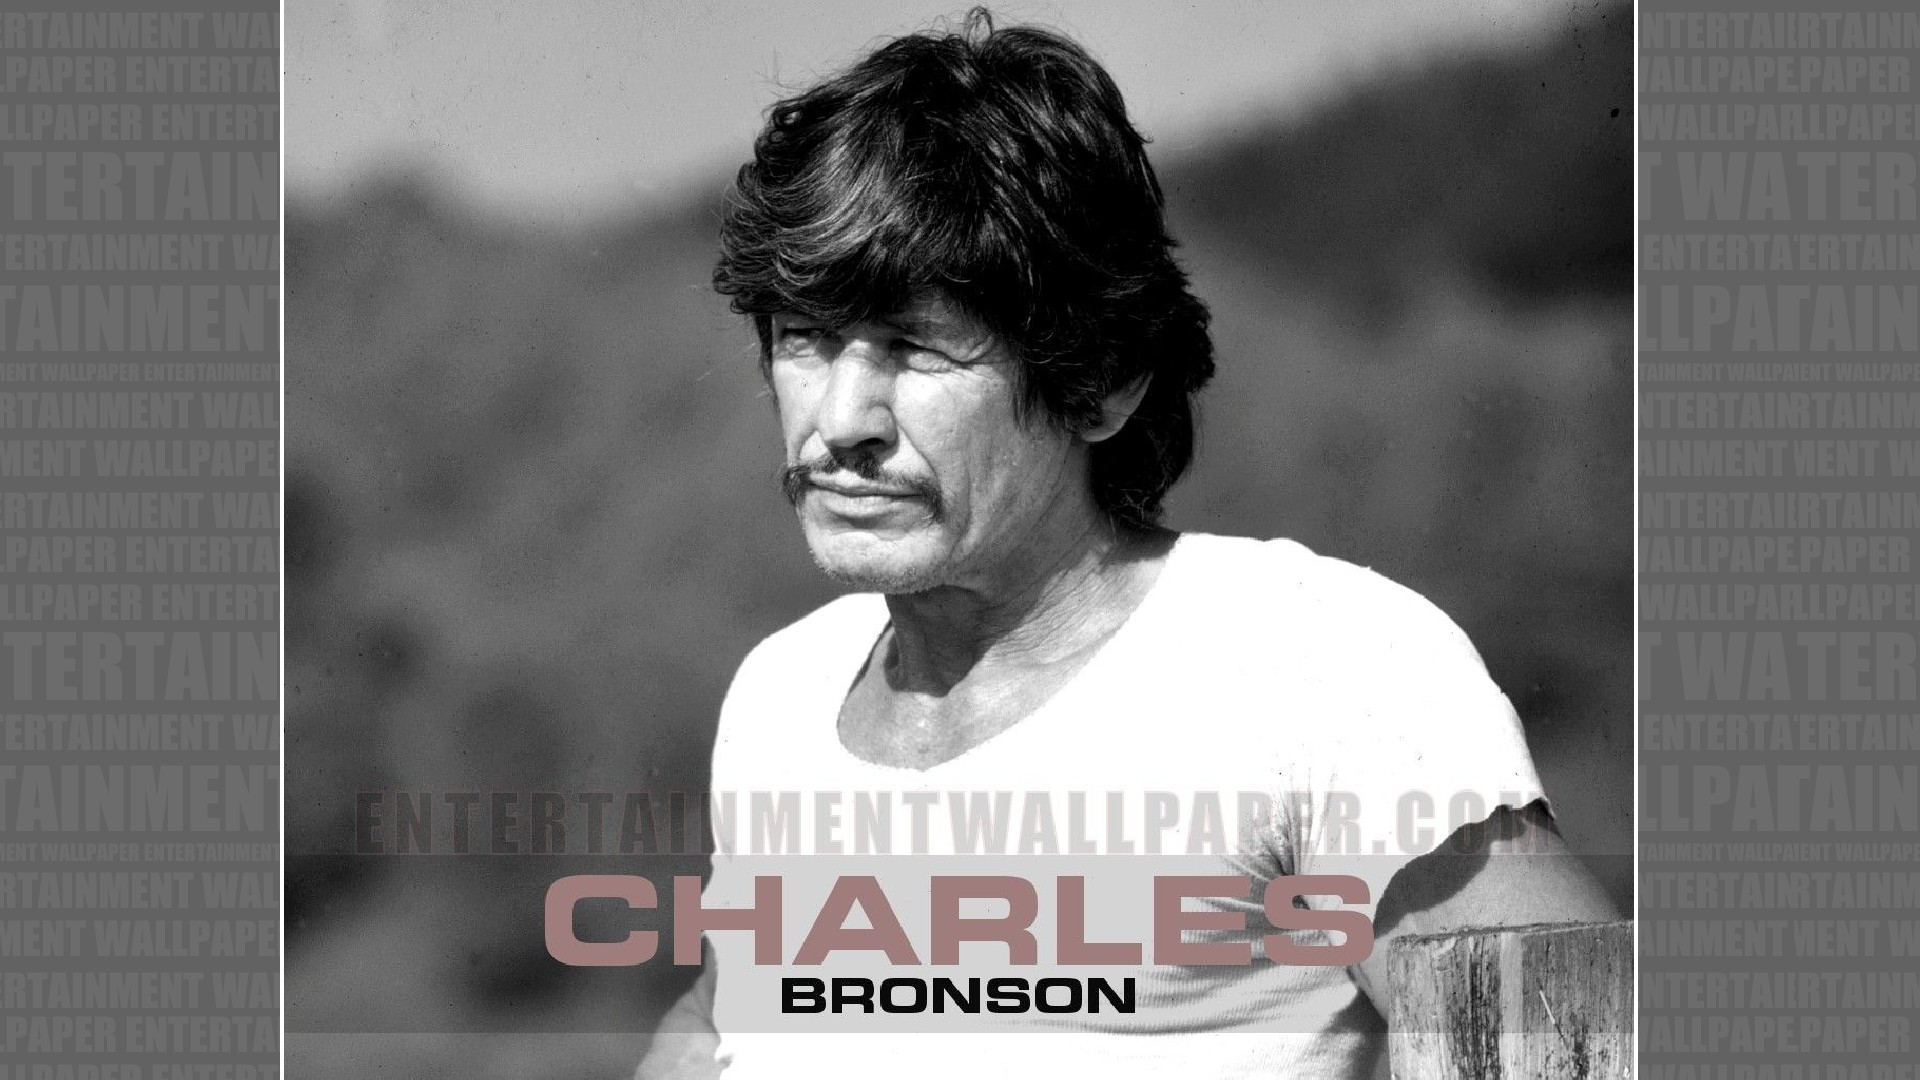 Charles Bronson Wallpaper - Original size, download now.